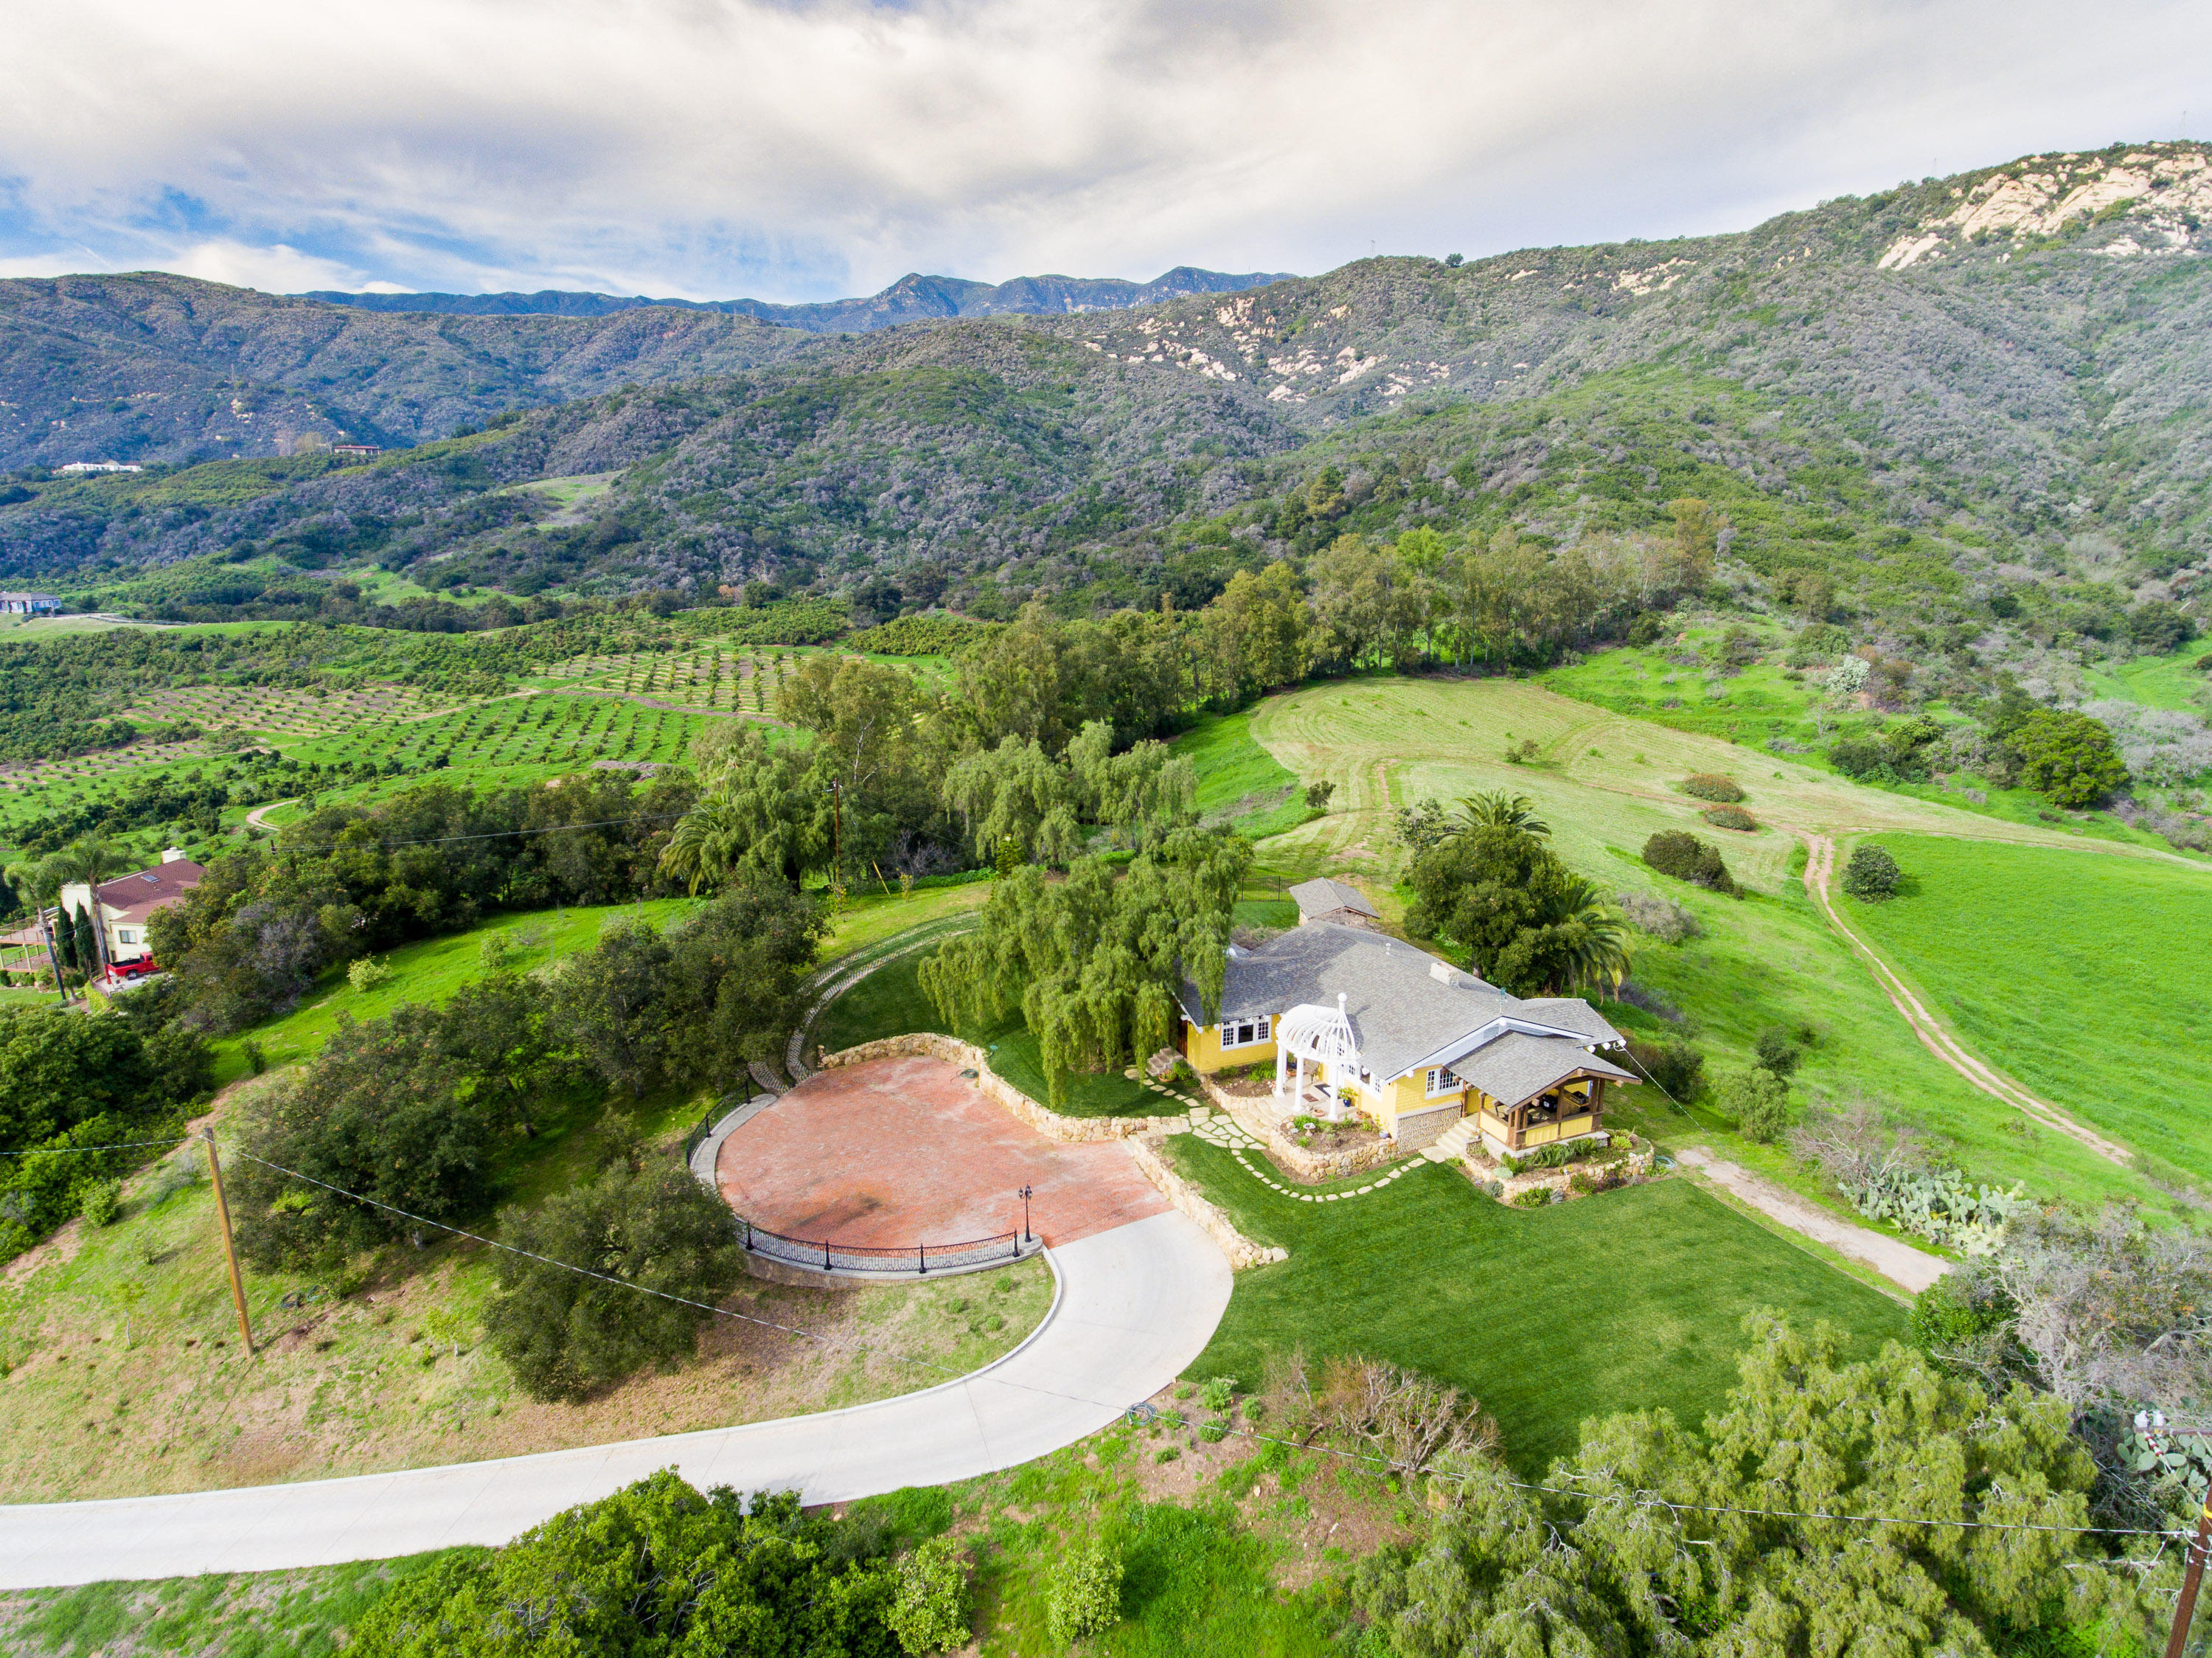 Property photo for 5840 Casitas Pass Rd Carpinteria, California 93013 - 17-538